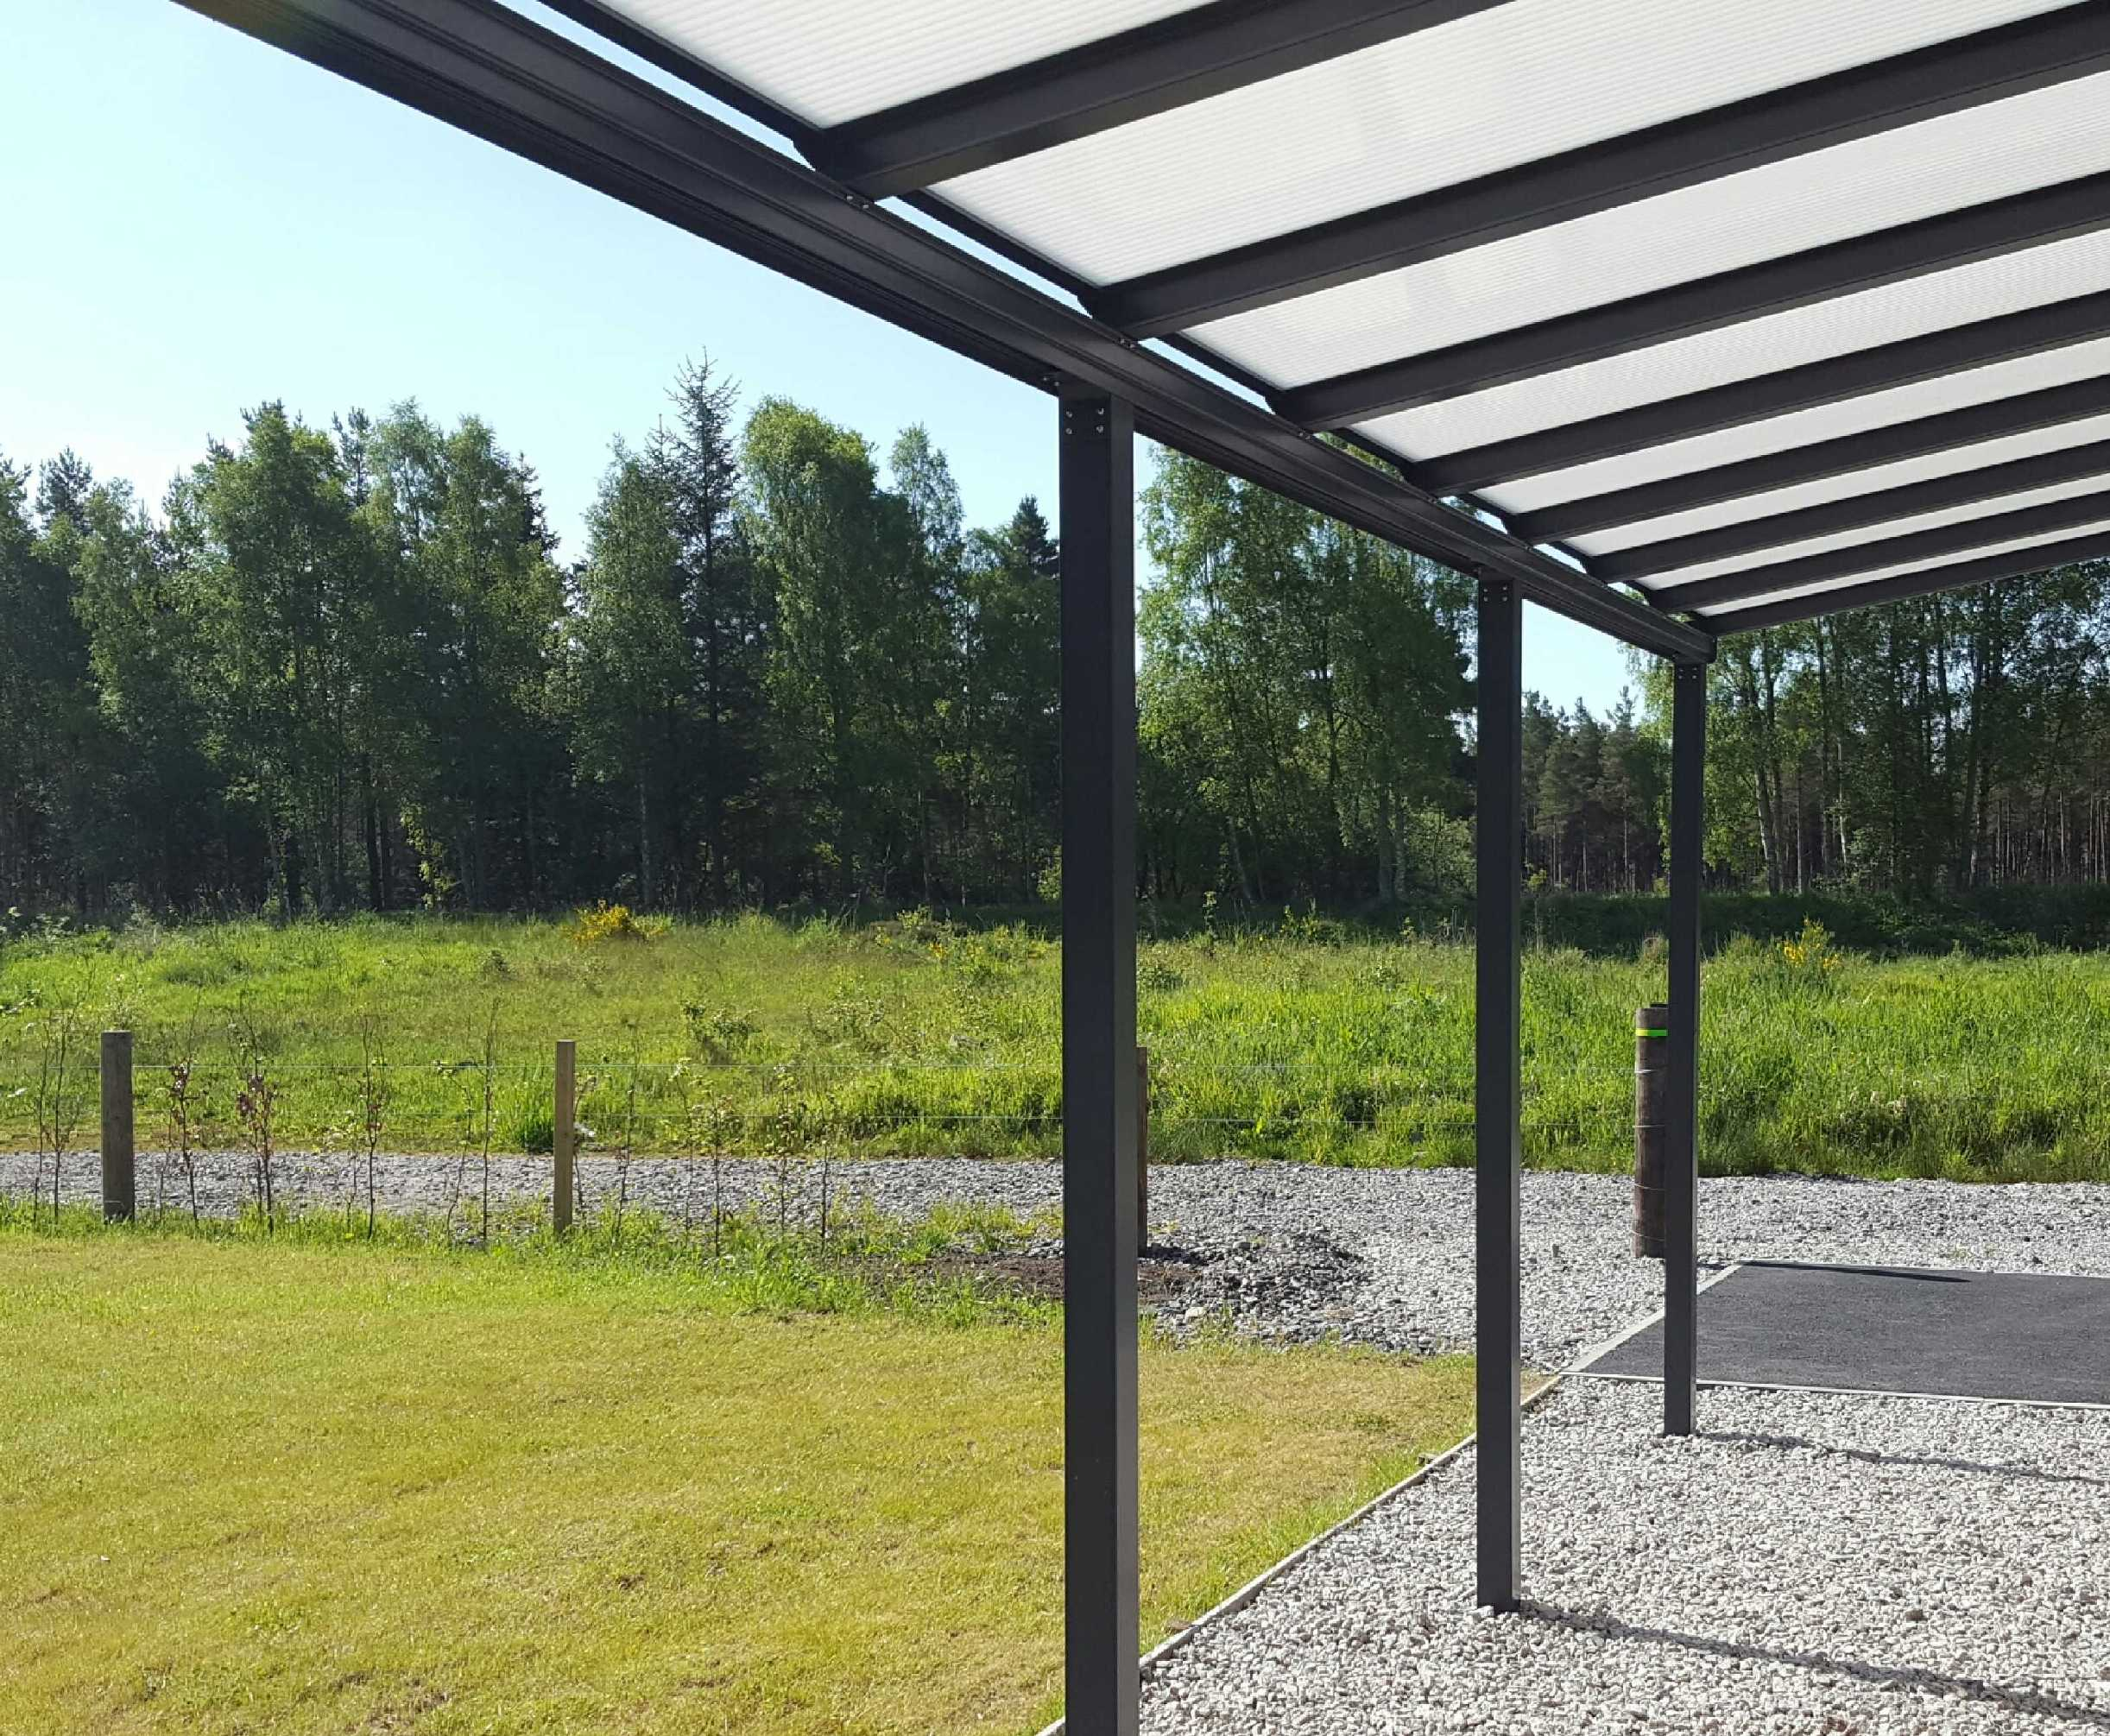 Omega Smart Lean-To Canopy, Anthracite Grey, UNGLAZED for 6mm Glazing - 4.2m (W) x 4.0m (P), (3) Supporting Posts